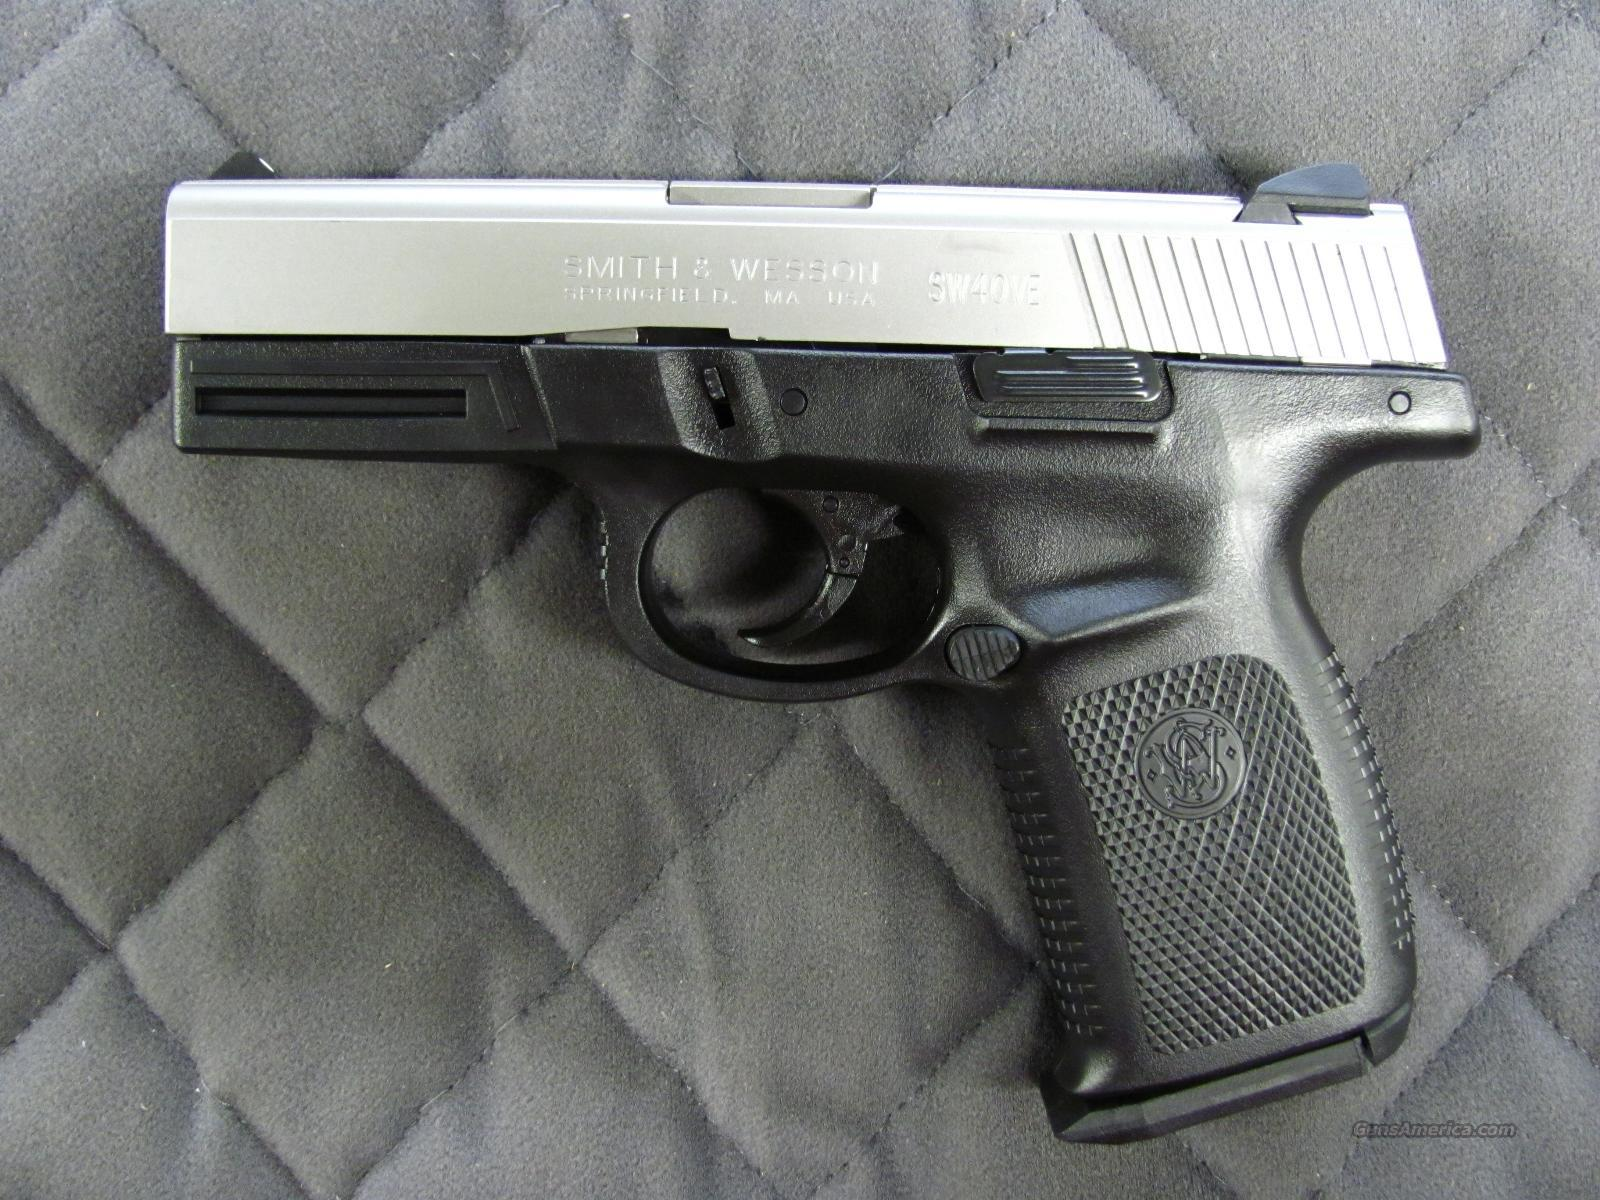 Smith & Wesson Sigma 9 mm 10 Round  **NEW**  Guns > Pistols > Smith & Wesson Pistols - Autos > Polymer Frame